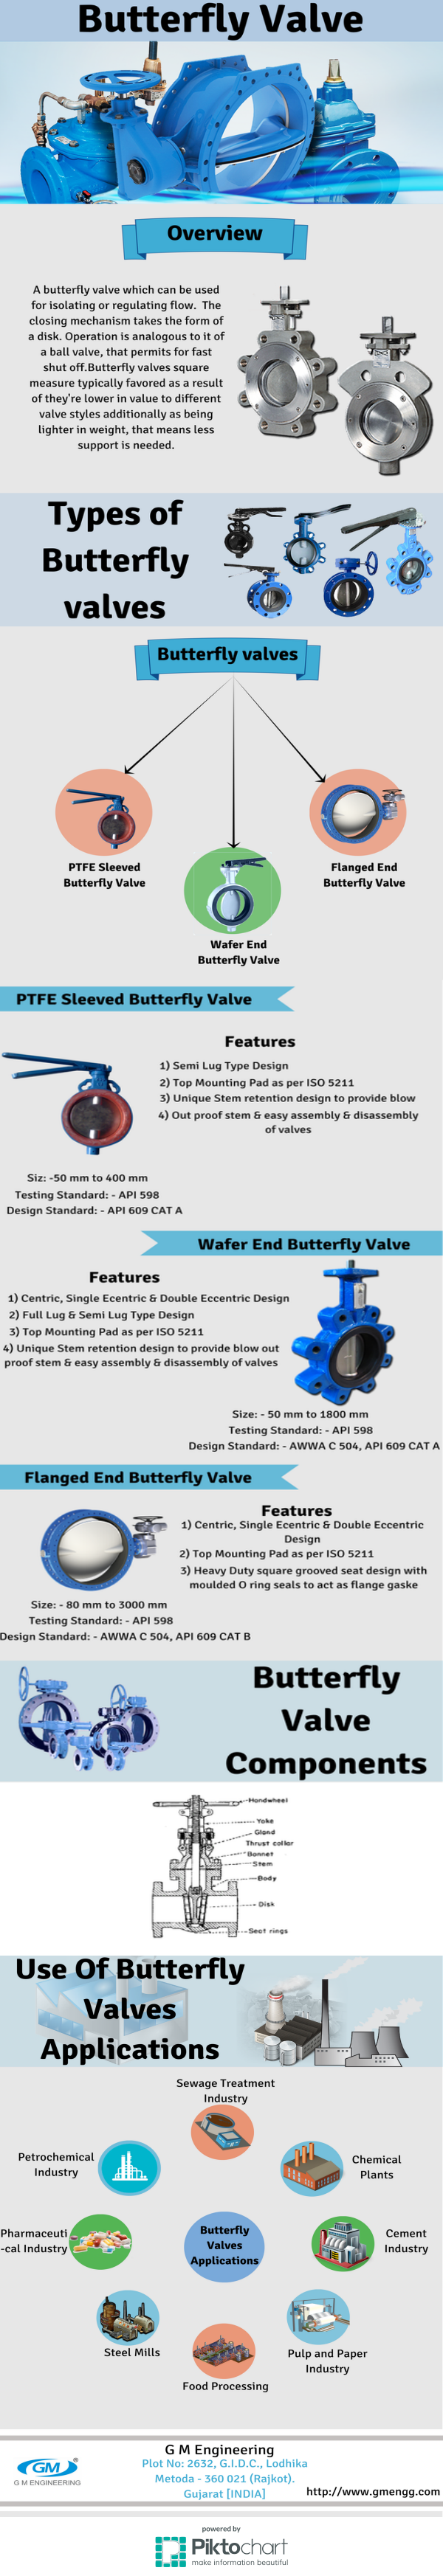 Industrial Butterfly Valves - Used For Regulating Or Isolating Flow